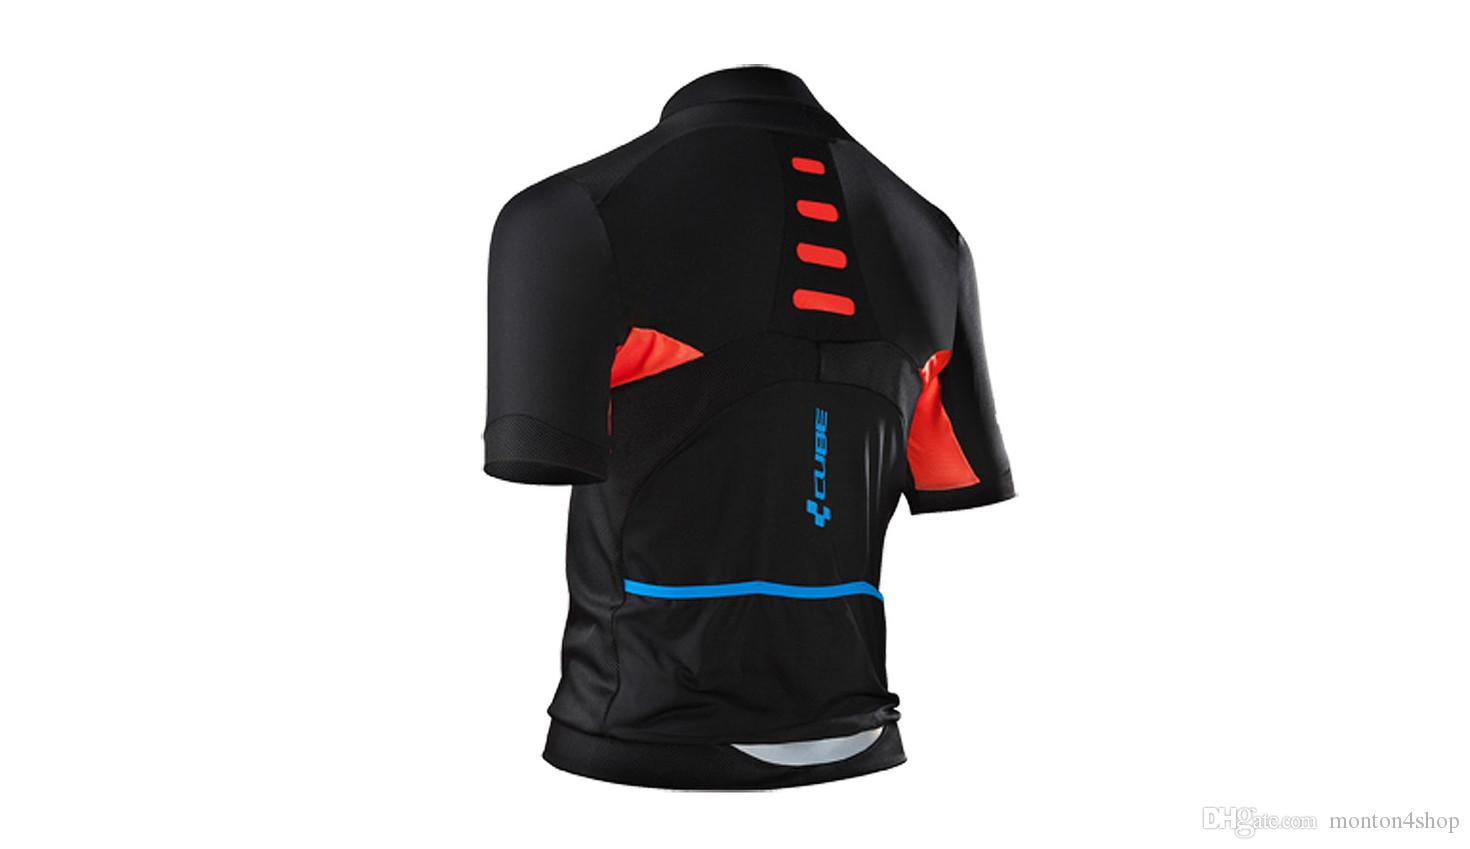 2019 Cube jersey breathable cycling jerseys Short sleeve summer quick dry cloth MTB Ropa Ciclismo P1